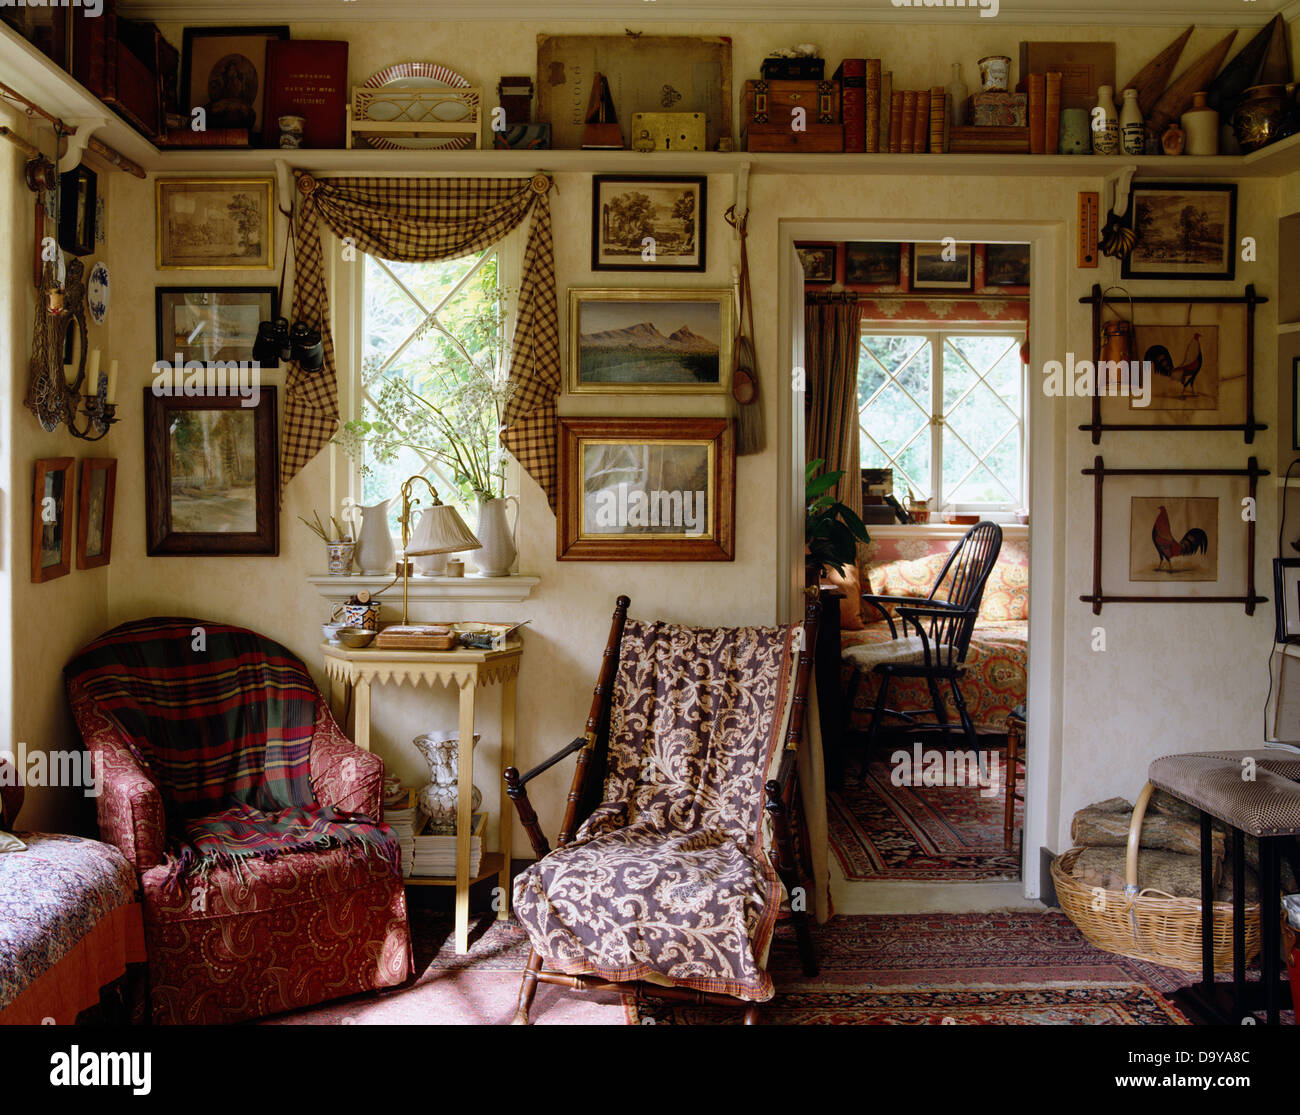 Tartan Throw On Red Armchair In Cluttered Living Room With Antique